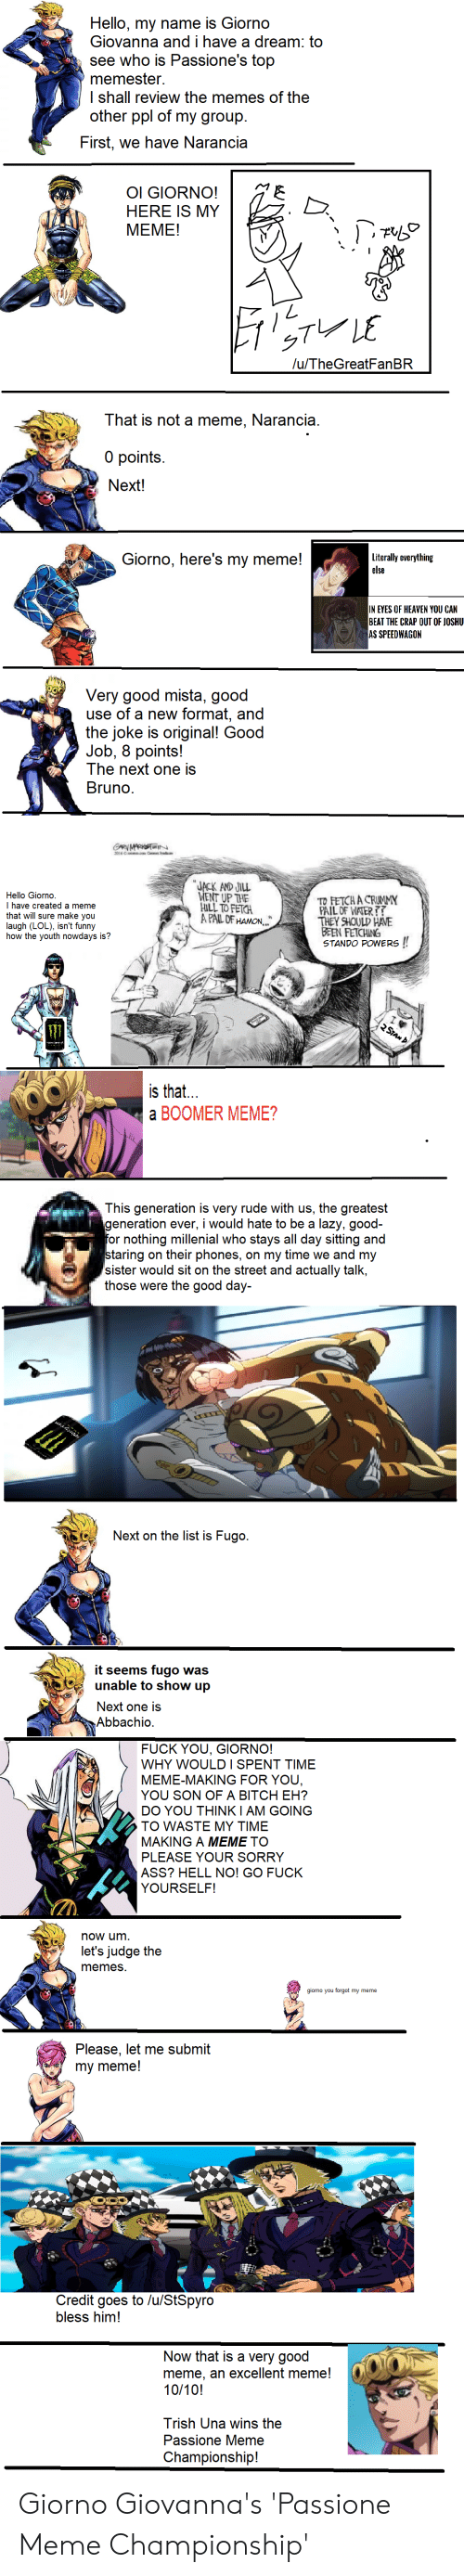 A Dream, Funny, and Hello: Hello, my name is Giorno  Giovanna and i have a dream: to  see who is Passione's top  memester  I shall review the memes of the  other ppl of my group  First, we have Narancia  HERE IS MY  MEME!  )、下心  u/TheGreatFanBR  That is not a meme, Narancia  0 points  Next!  Giorno, here's my meme!  Literally verything  else  N EYES OF HEATEN YOU CAN  EATTHE CRAP OUT OF J0SHU  S SPEEDWAGON  Very good mista, good  use of a new format, and  the joke is original! Good  Job, 8 points!  The next one is  Bruno  Hello Giomo.  I have created a meme  that will sure make you  augh (LOL), isnt funny  how the youth nowdays is?  NT UP THE  EEVCR  FAİLOFWER??  THEY SHOULD HANE  EN FETCHIN  STANDO POWERS!  is that...  a BOOMER MEME?  This generation is very rude with us, the greatest  generation ever, i would hate to be a lazy, good-  or nothing millenial who stays all day sitting and  taring on their phones, on my time we and my  sister would sit on the street and actually talk  those were the good day-  Next on the list is Fugo  it seems fugo was  unable to show up  Next one is  Abbachio  FUCK YOU, GIORNO  WHY WOULDI SPENT TIME  MEME-MAKING FOR YOU  YOU SON OF A BITCH EH?  DO YOU THINKI AM GOING  TO WASTE MY TIME  MAKING A MEME TO  PLEASE YOUR SORRY  ASS? HELL NO! GO FUCK  YOURSELF  now um.  let's judge the  memeS  Please, let me submit  my meme!  Credit goes to lu/StSpyro  bless him!  Now that is a very good  meme, an excellent meme!  10/10!  Trish Una wins the  Passione Meme  Championship! Giorno Giovanna's 'Passione Meme Championship'